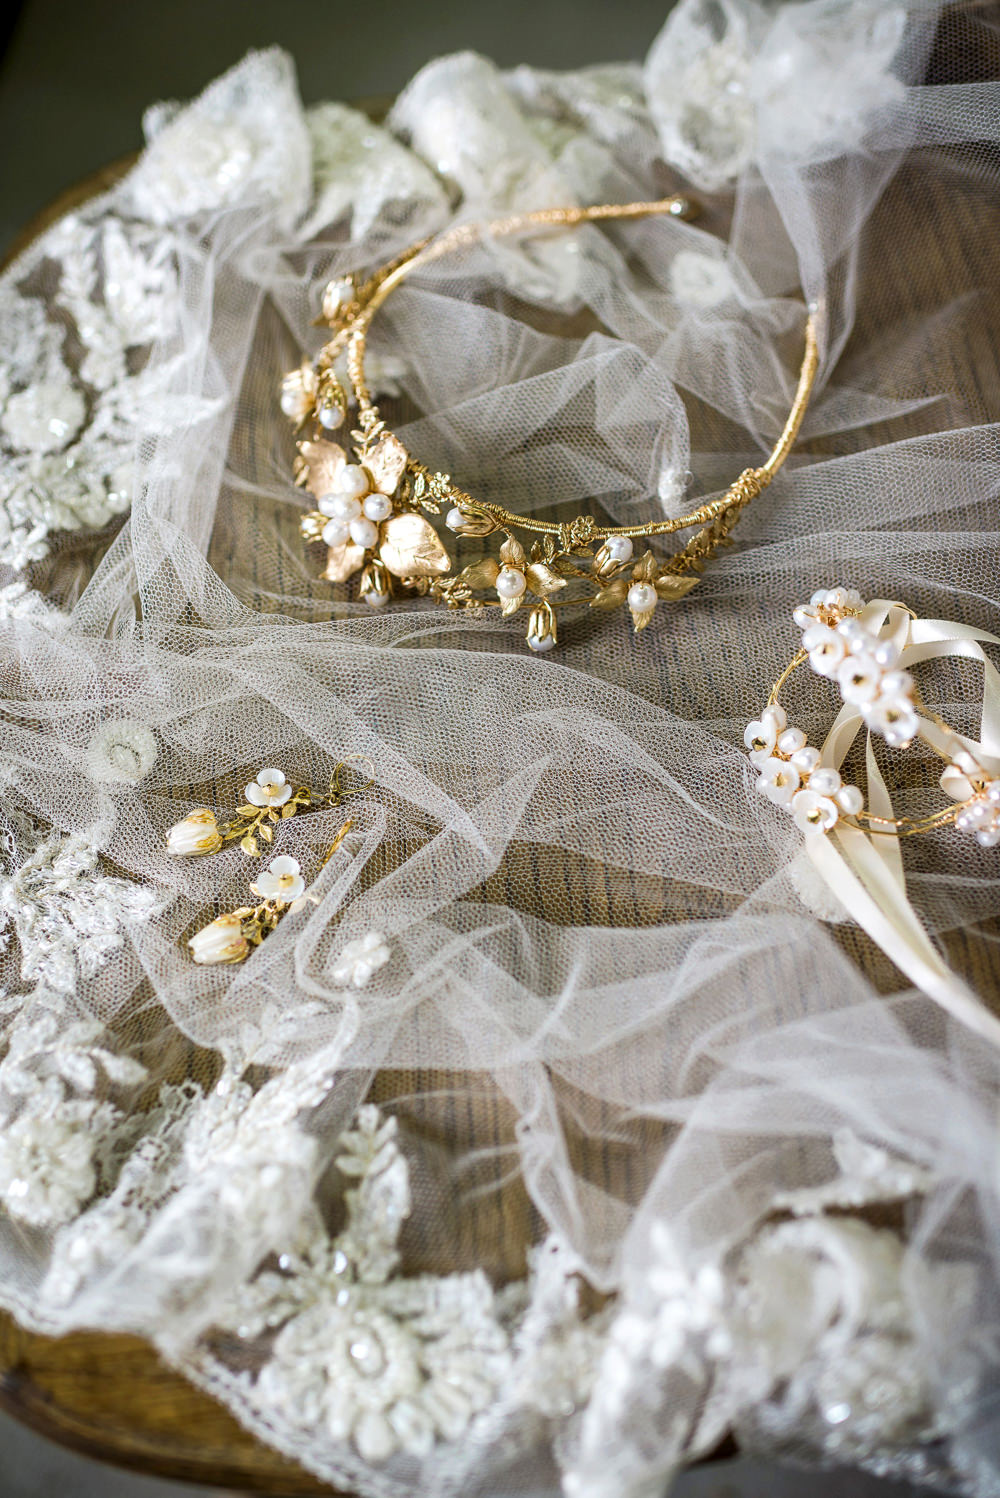 Bride Bridal Accessories Veil Indie Wedding Ideas Kat Antos-Lewis Photography